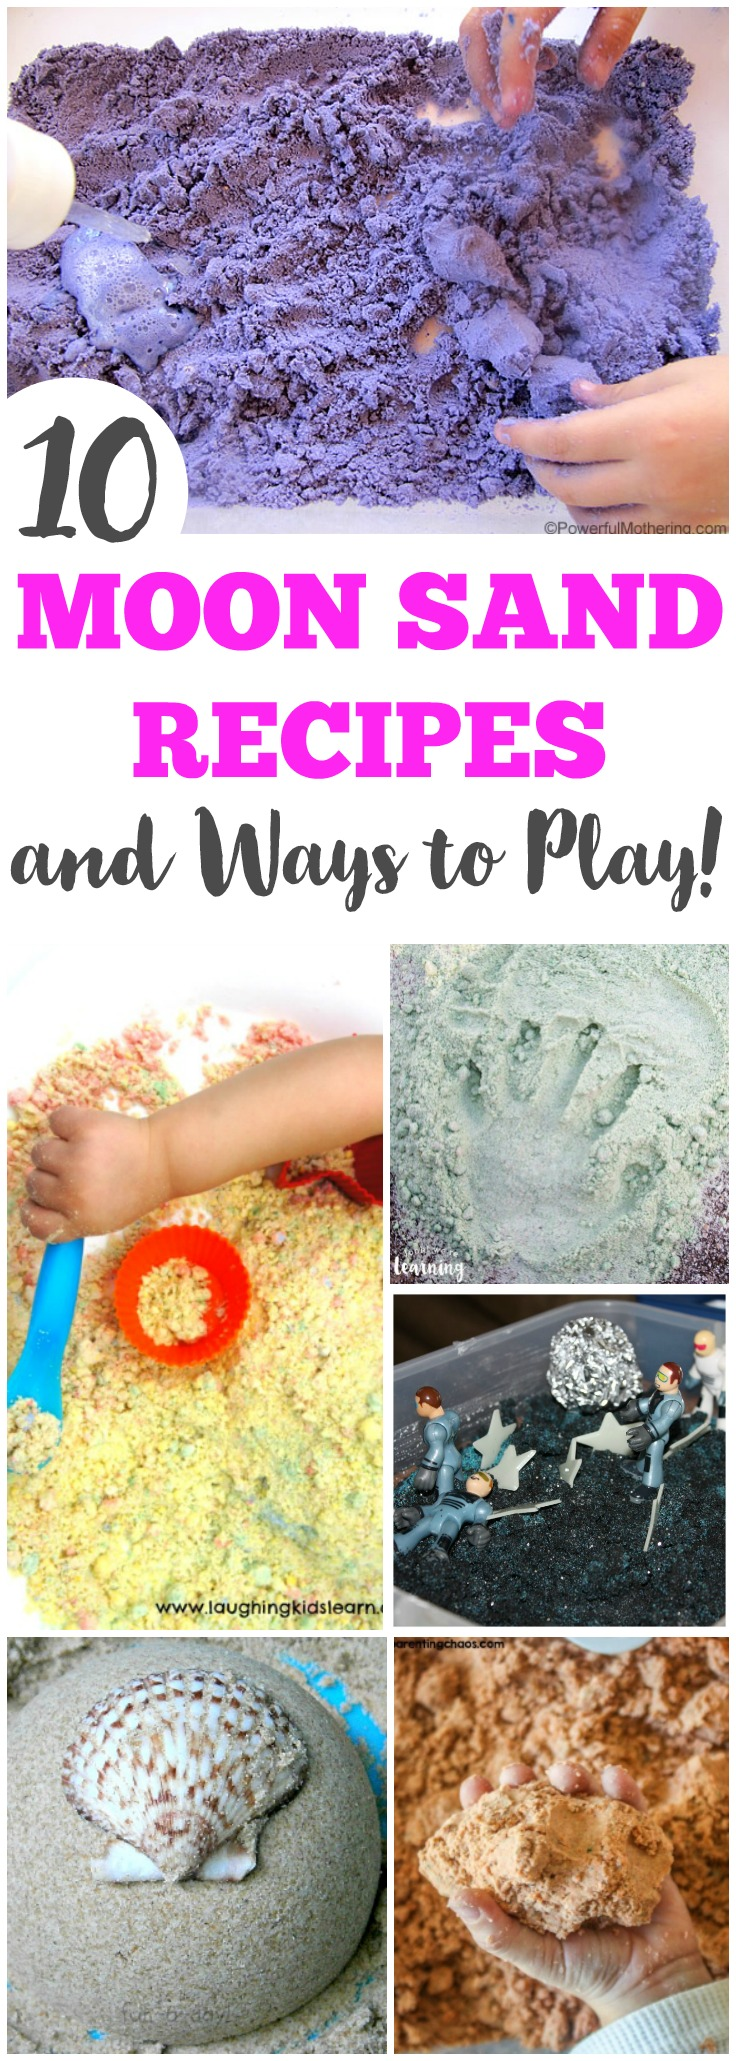 Let the kids have some simple sensory fun with these cool moon sand recipe ideas!